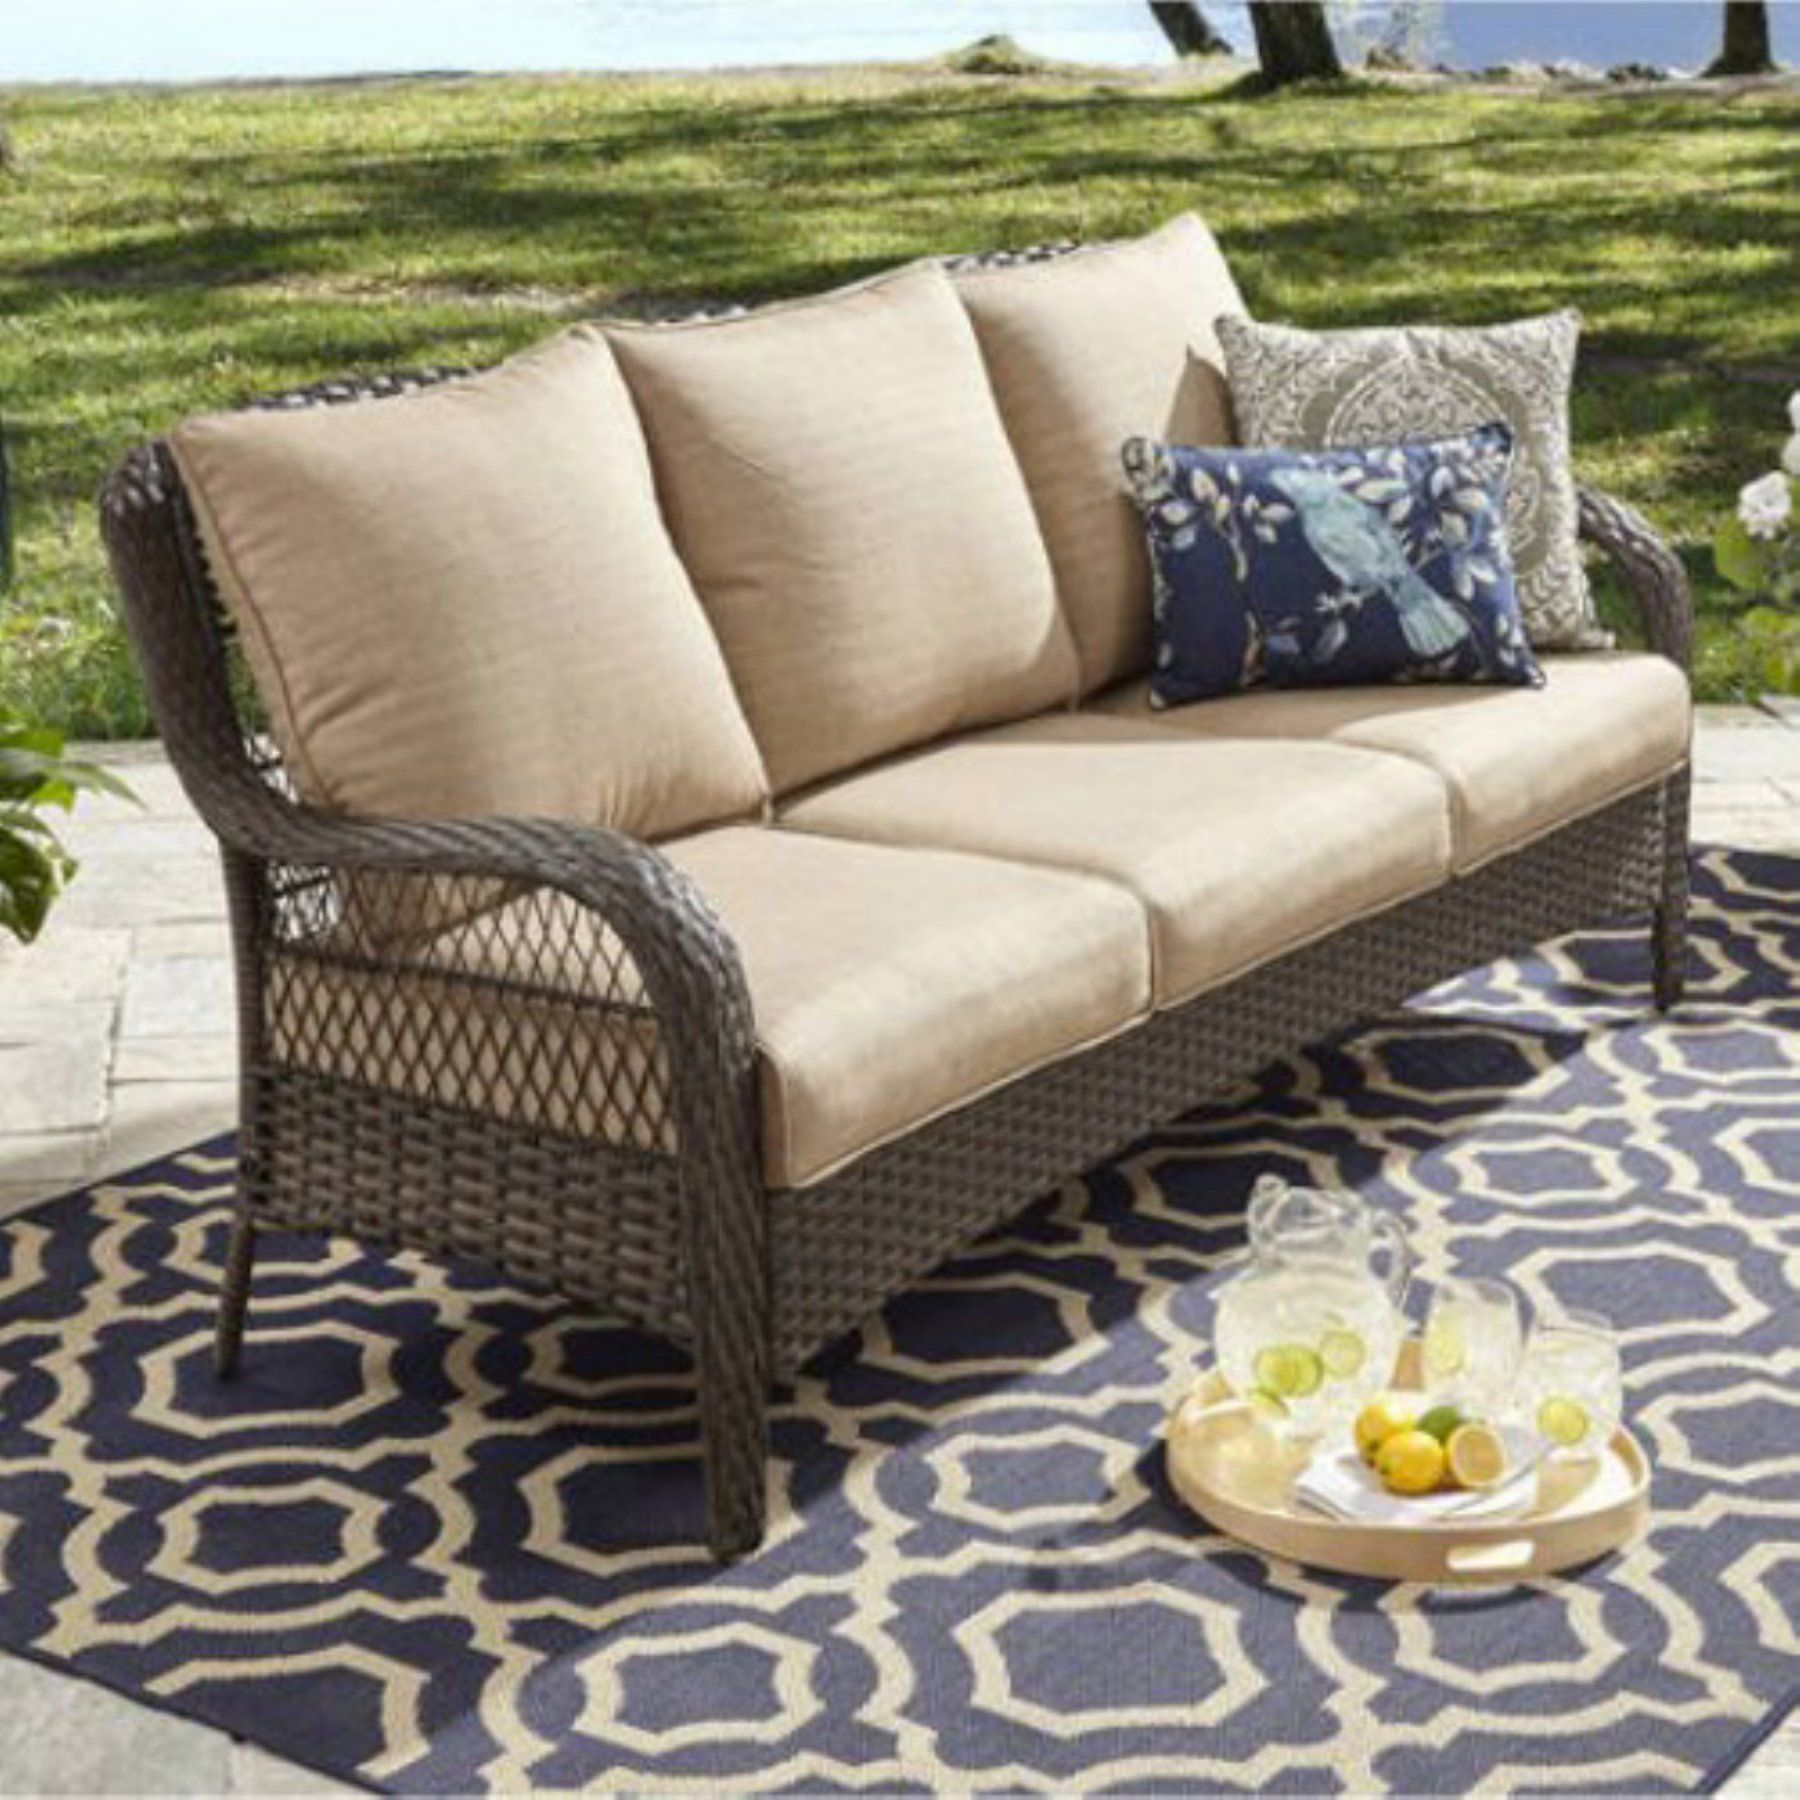 85c2bfa27ad8ca844687b5b04291a899 - Better Homes And Gardens Colebrook Outdoor Glider Bench